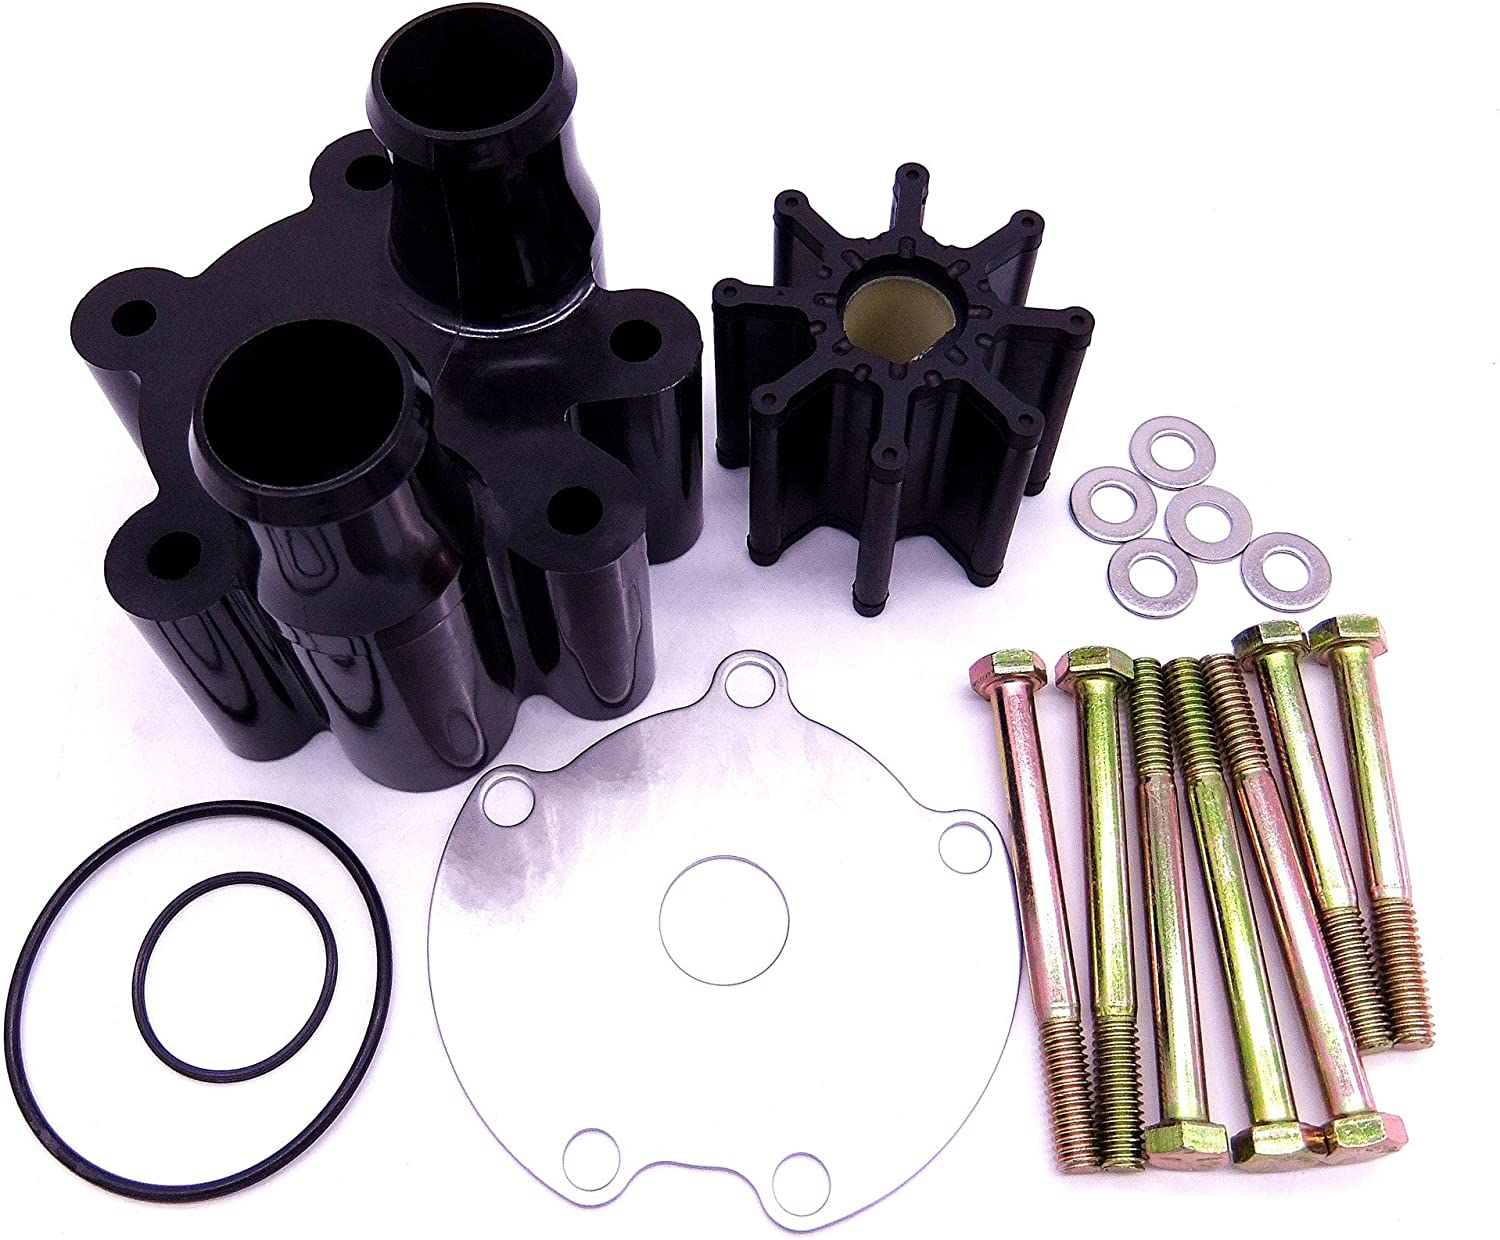 Water Pump Housing /& Impeller Repair Kit Replaces for Mercruiser Bravo 46-807151A14,by LIYYOO